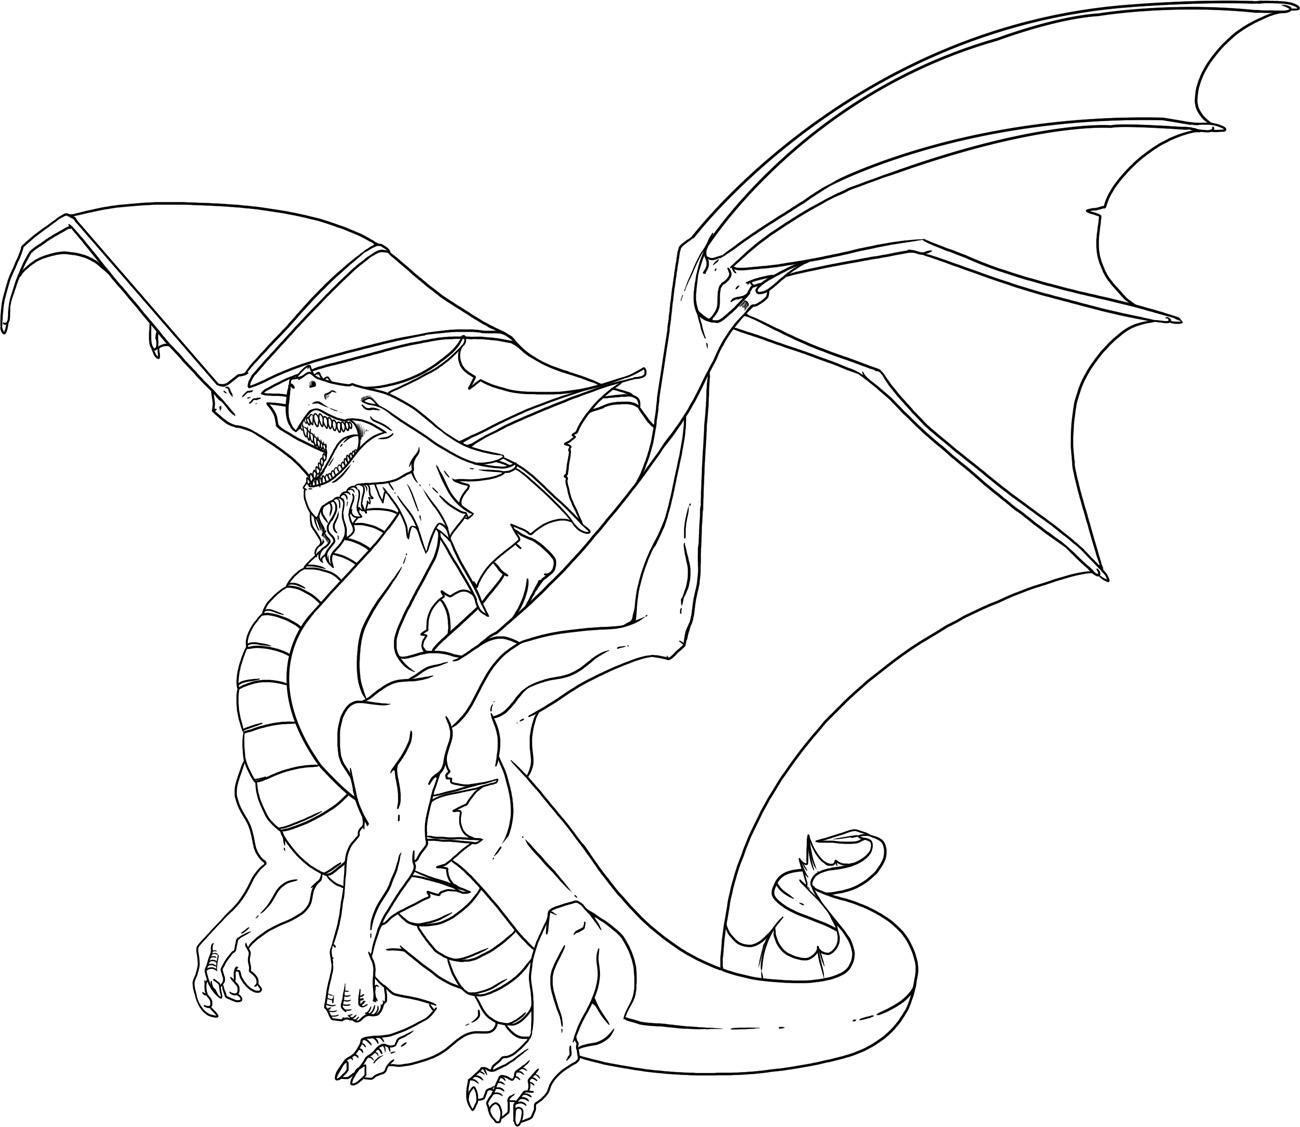 Printable coloring pages of dragons - Printable Dragon Coloring Pages